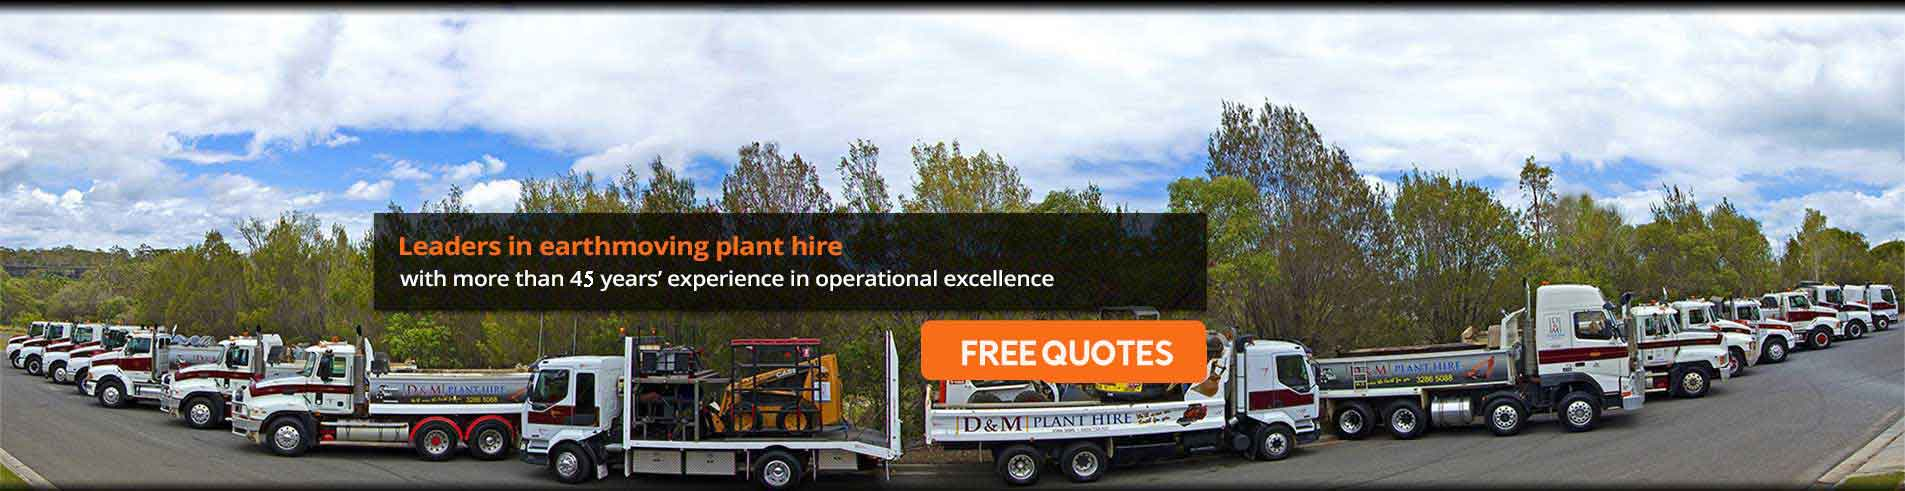 Earthmoving Plant Hire